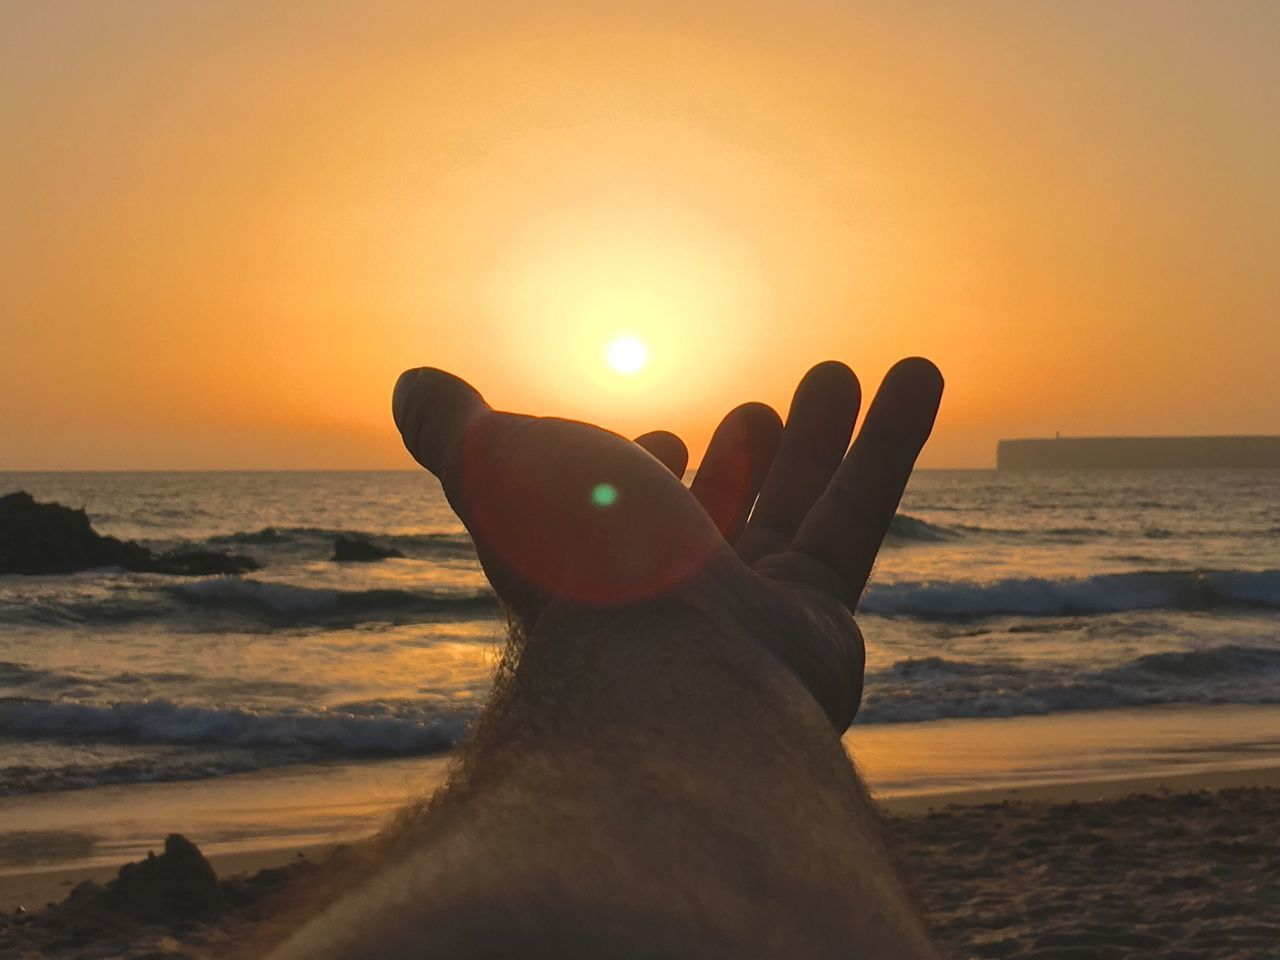 sunset, sea, human body part, sun, human hand, horizon over water, one person, sky, water, beach, real people, nature, beauty in nature, sunlight, outdoors, silhouette, close-up, scenics, day, people